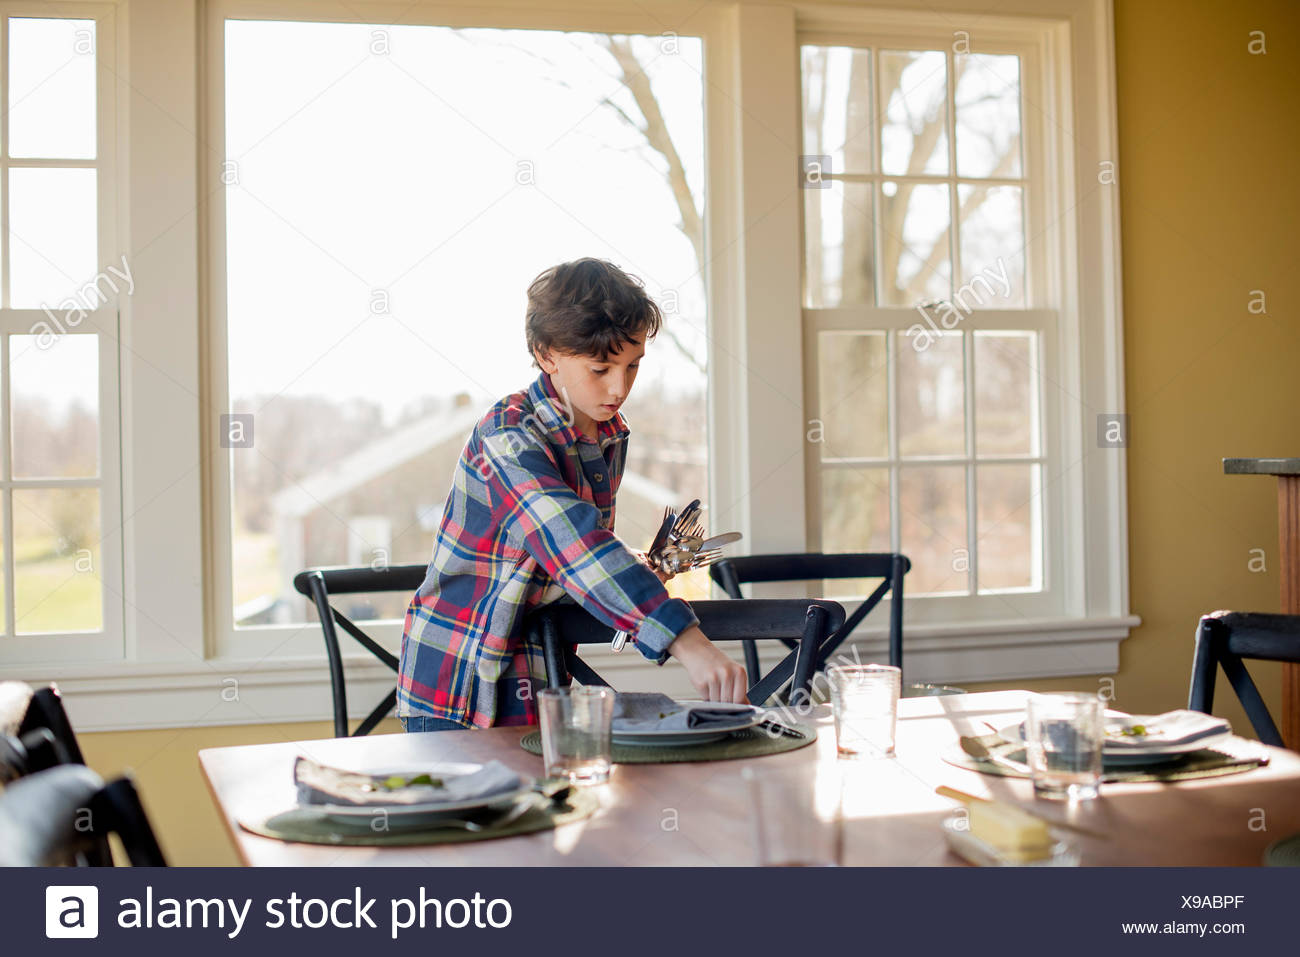 A young boy setting the table with cutlery and glasses. - Stock Image